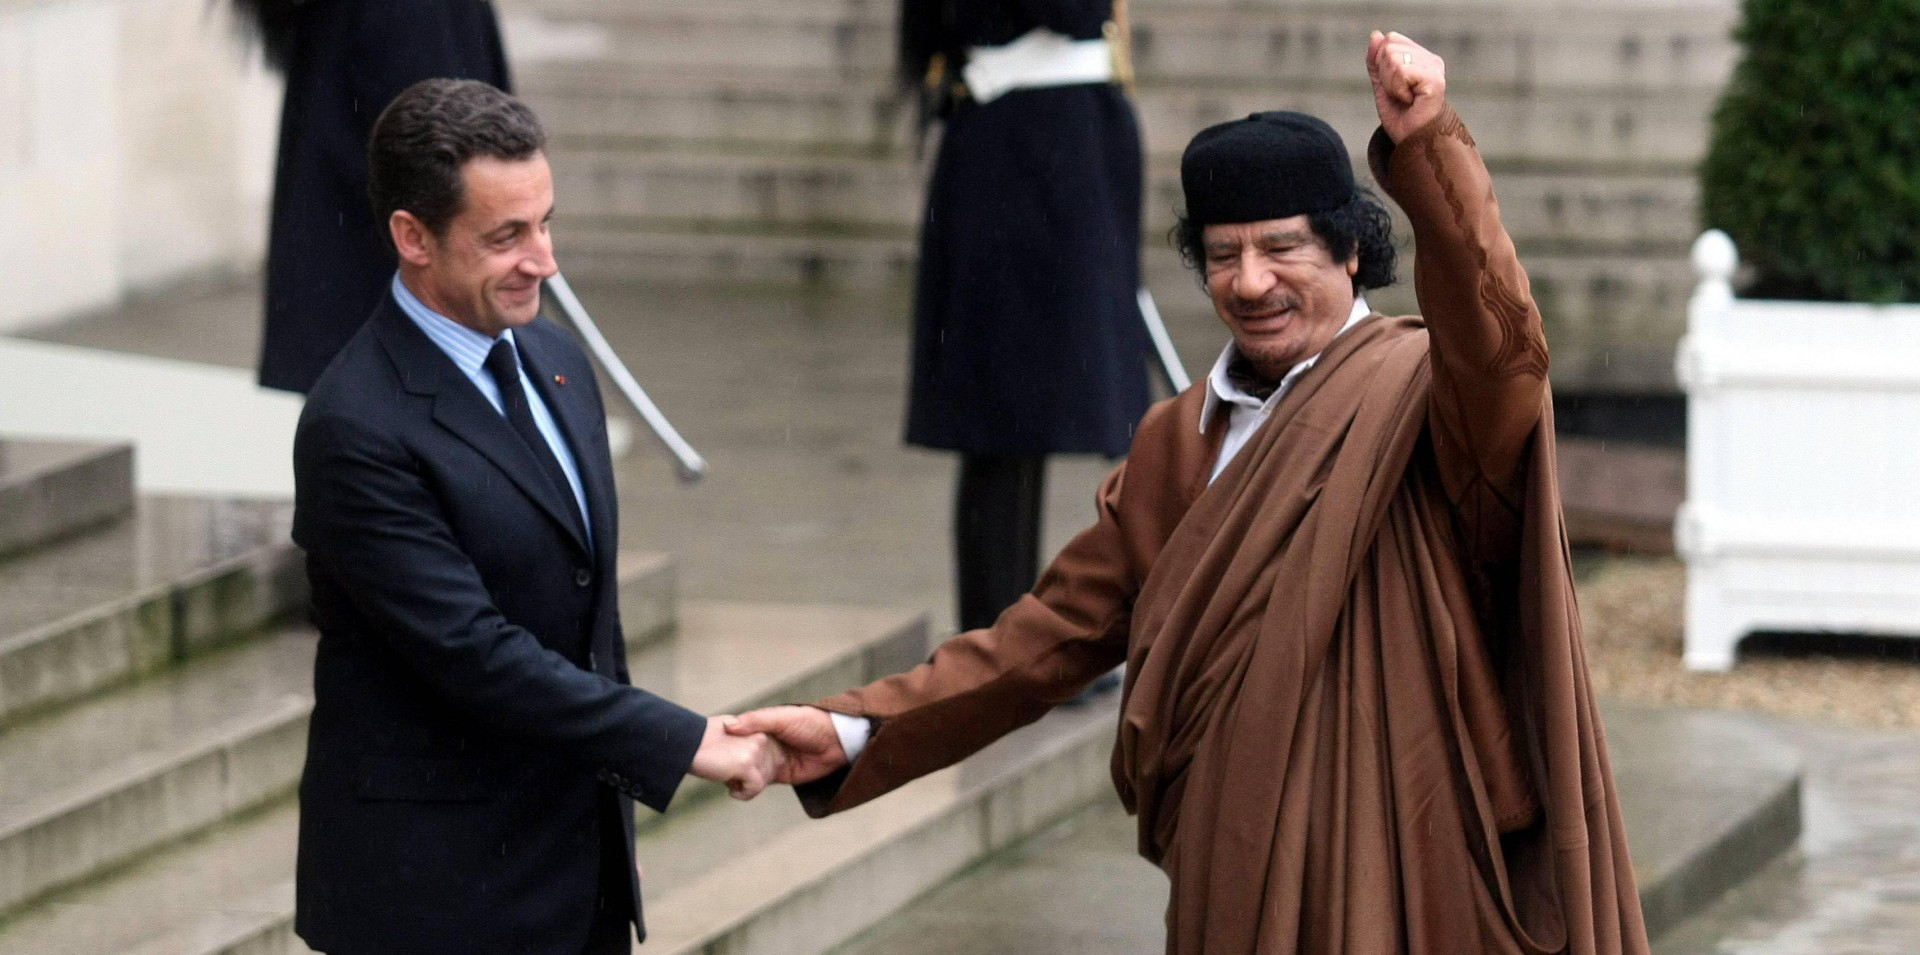 Italyphotopress - il presidente francese Nicolas Sarkozy - Foto IPP/imago/IP3press Parigi 10.12.2007 nella foto il presidente francese Nicolas Sarkozy stringe la mano a Muammar al Gheddafi ( leader capo di Stato libico ) - WARNING AVAILABLE ONLY FOR ITALIAN MARKET - Italy Photo Press -